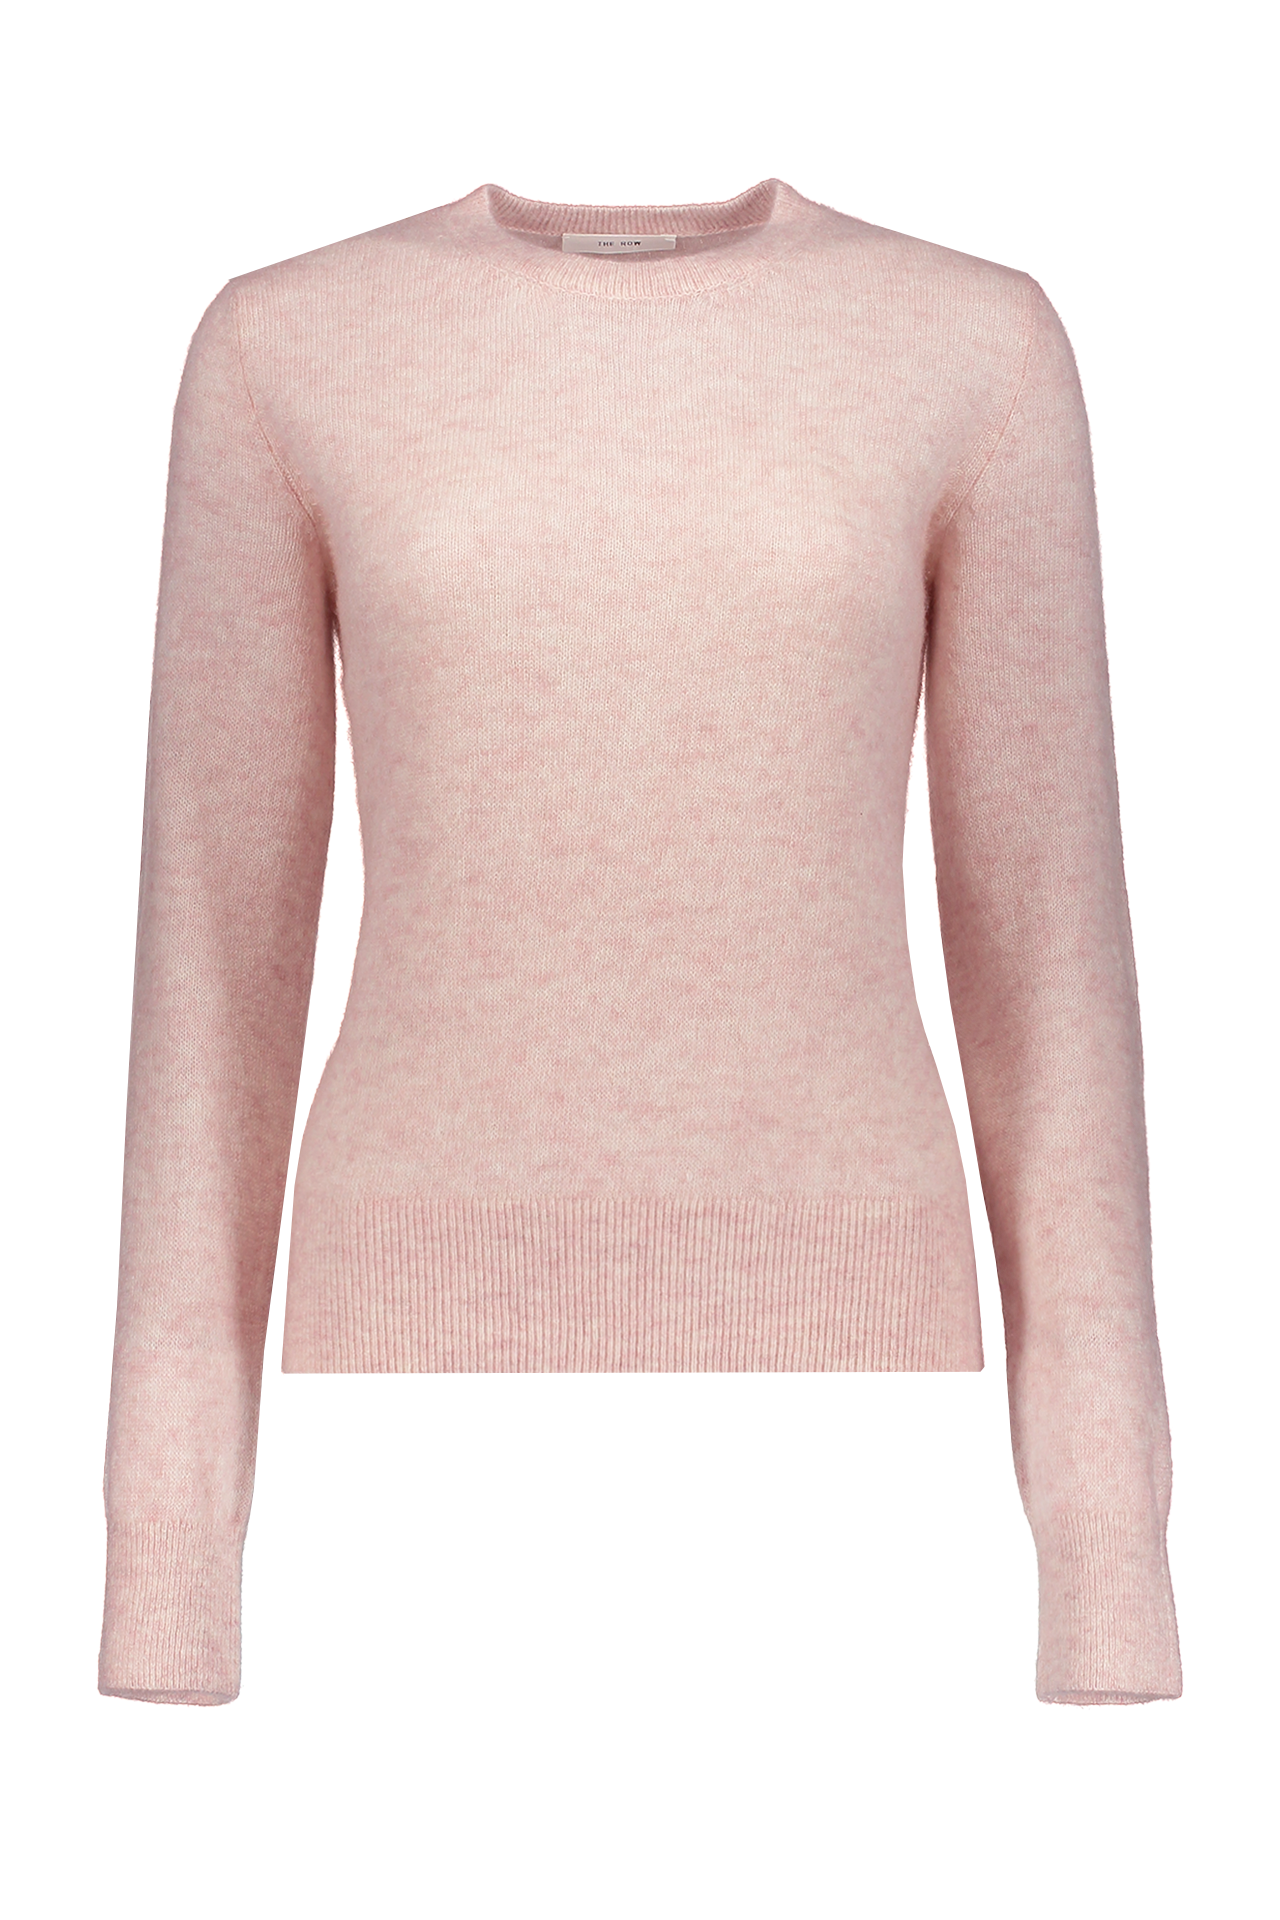 Minco Crewneck In Pale Pink